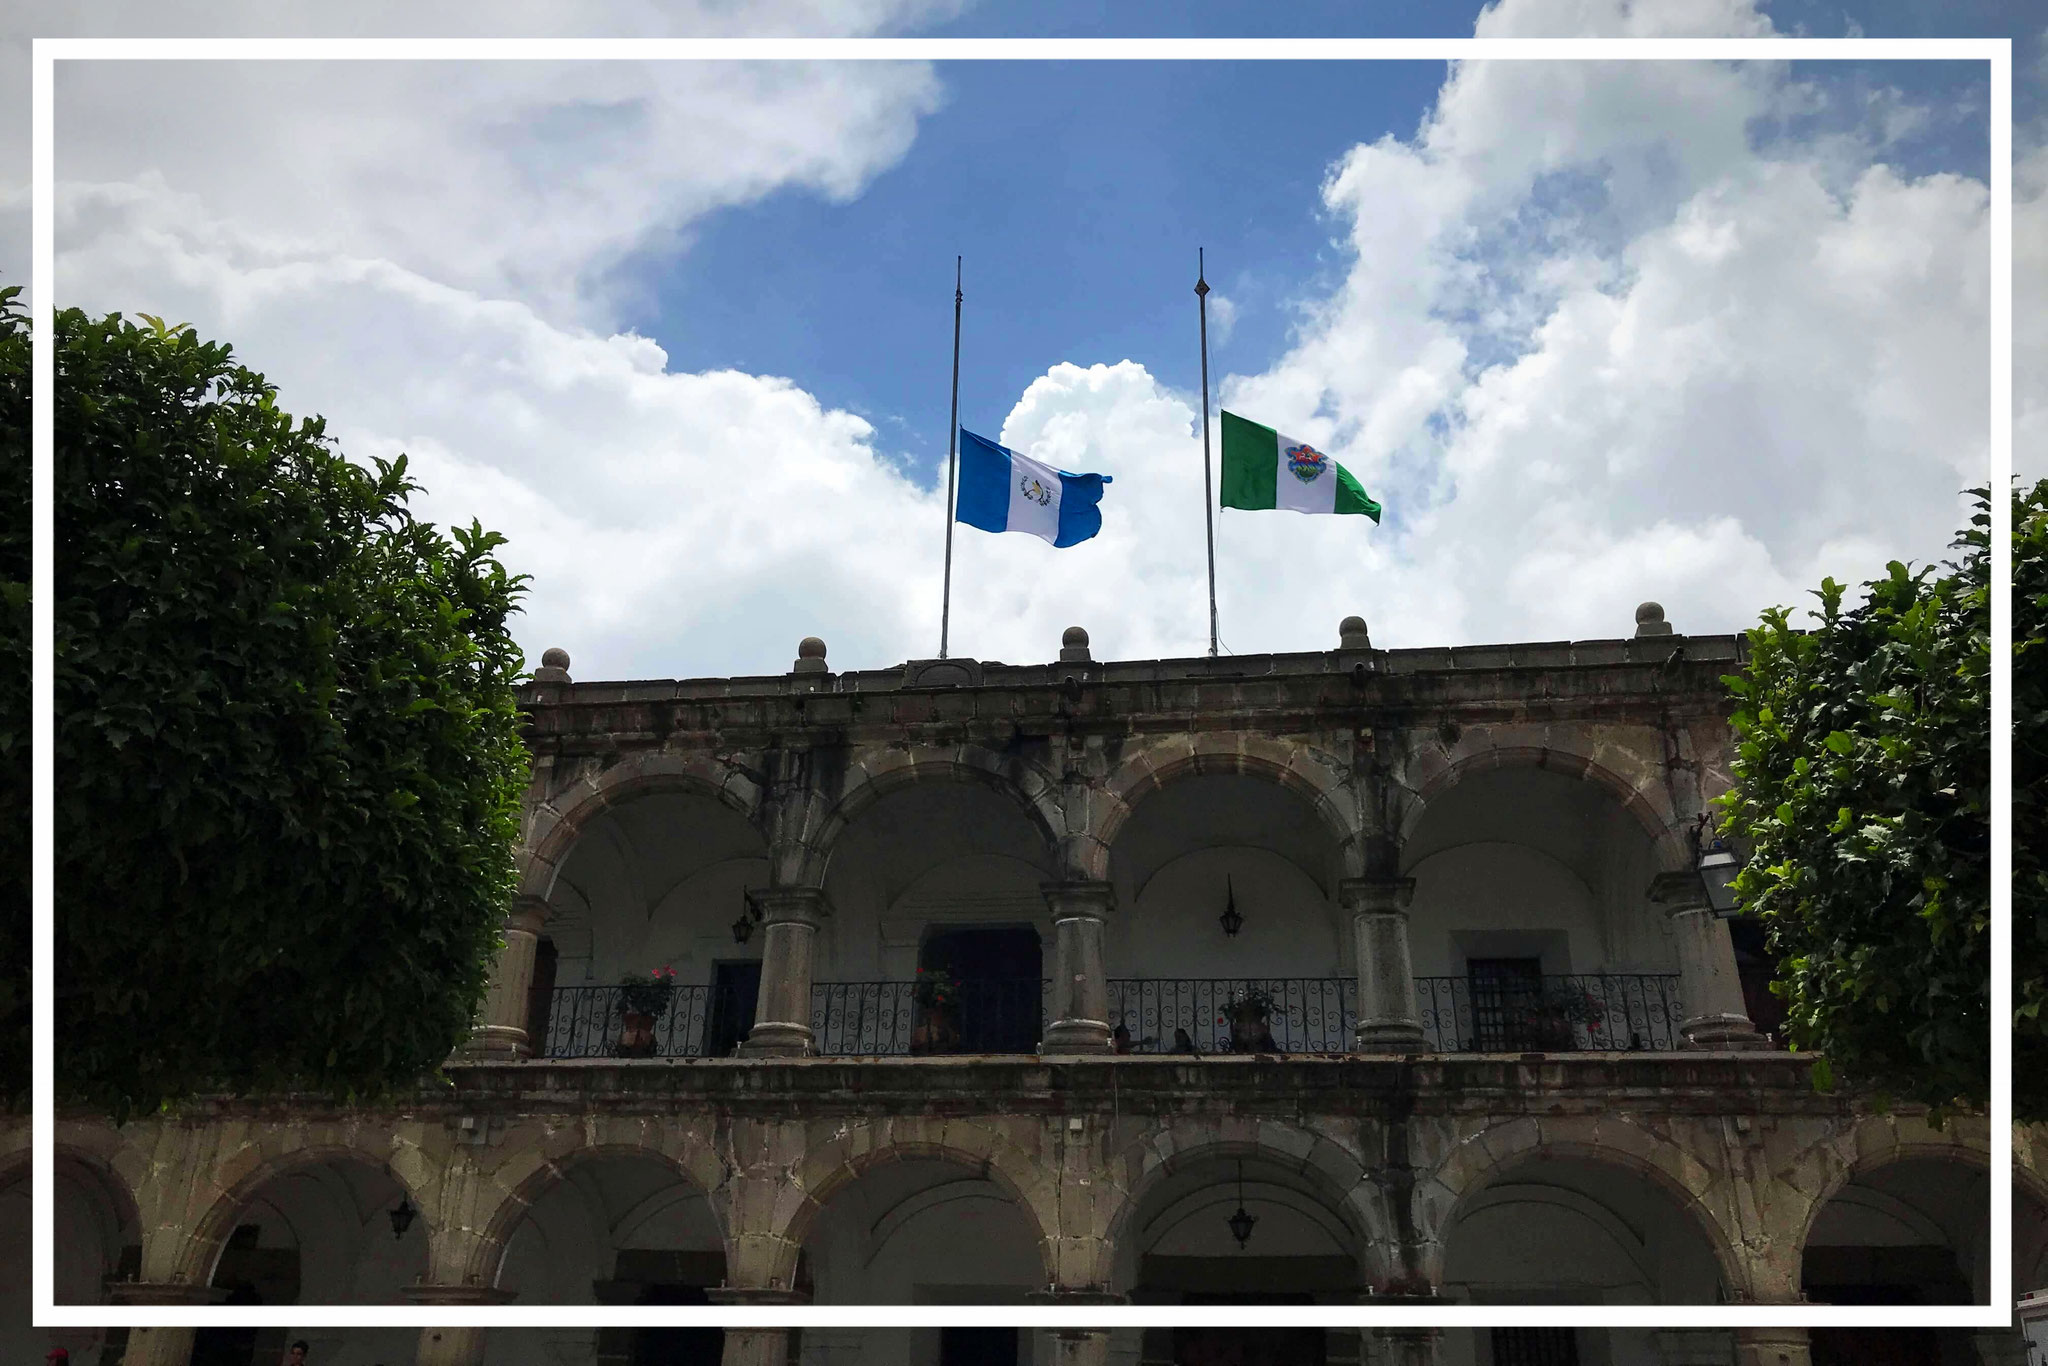 ... in commemoration of the victims blow flags at half-mast on the Palacio del Ayuntamiento